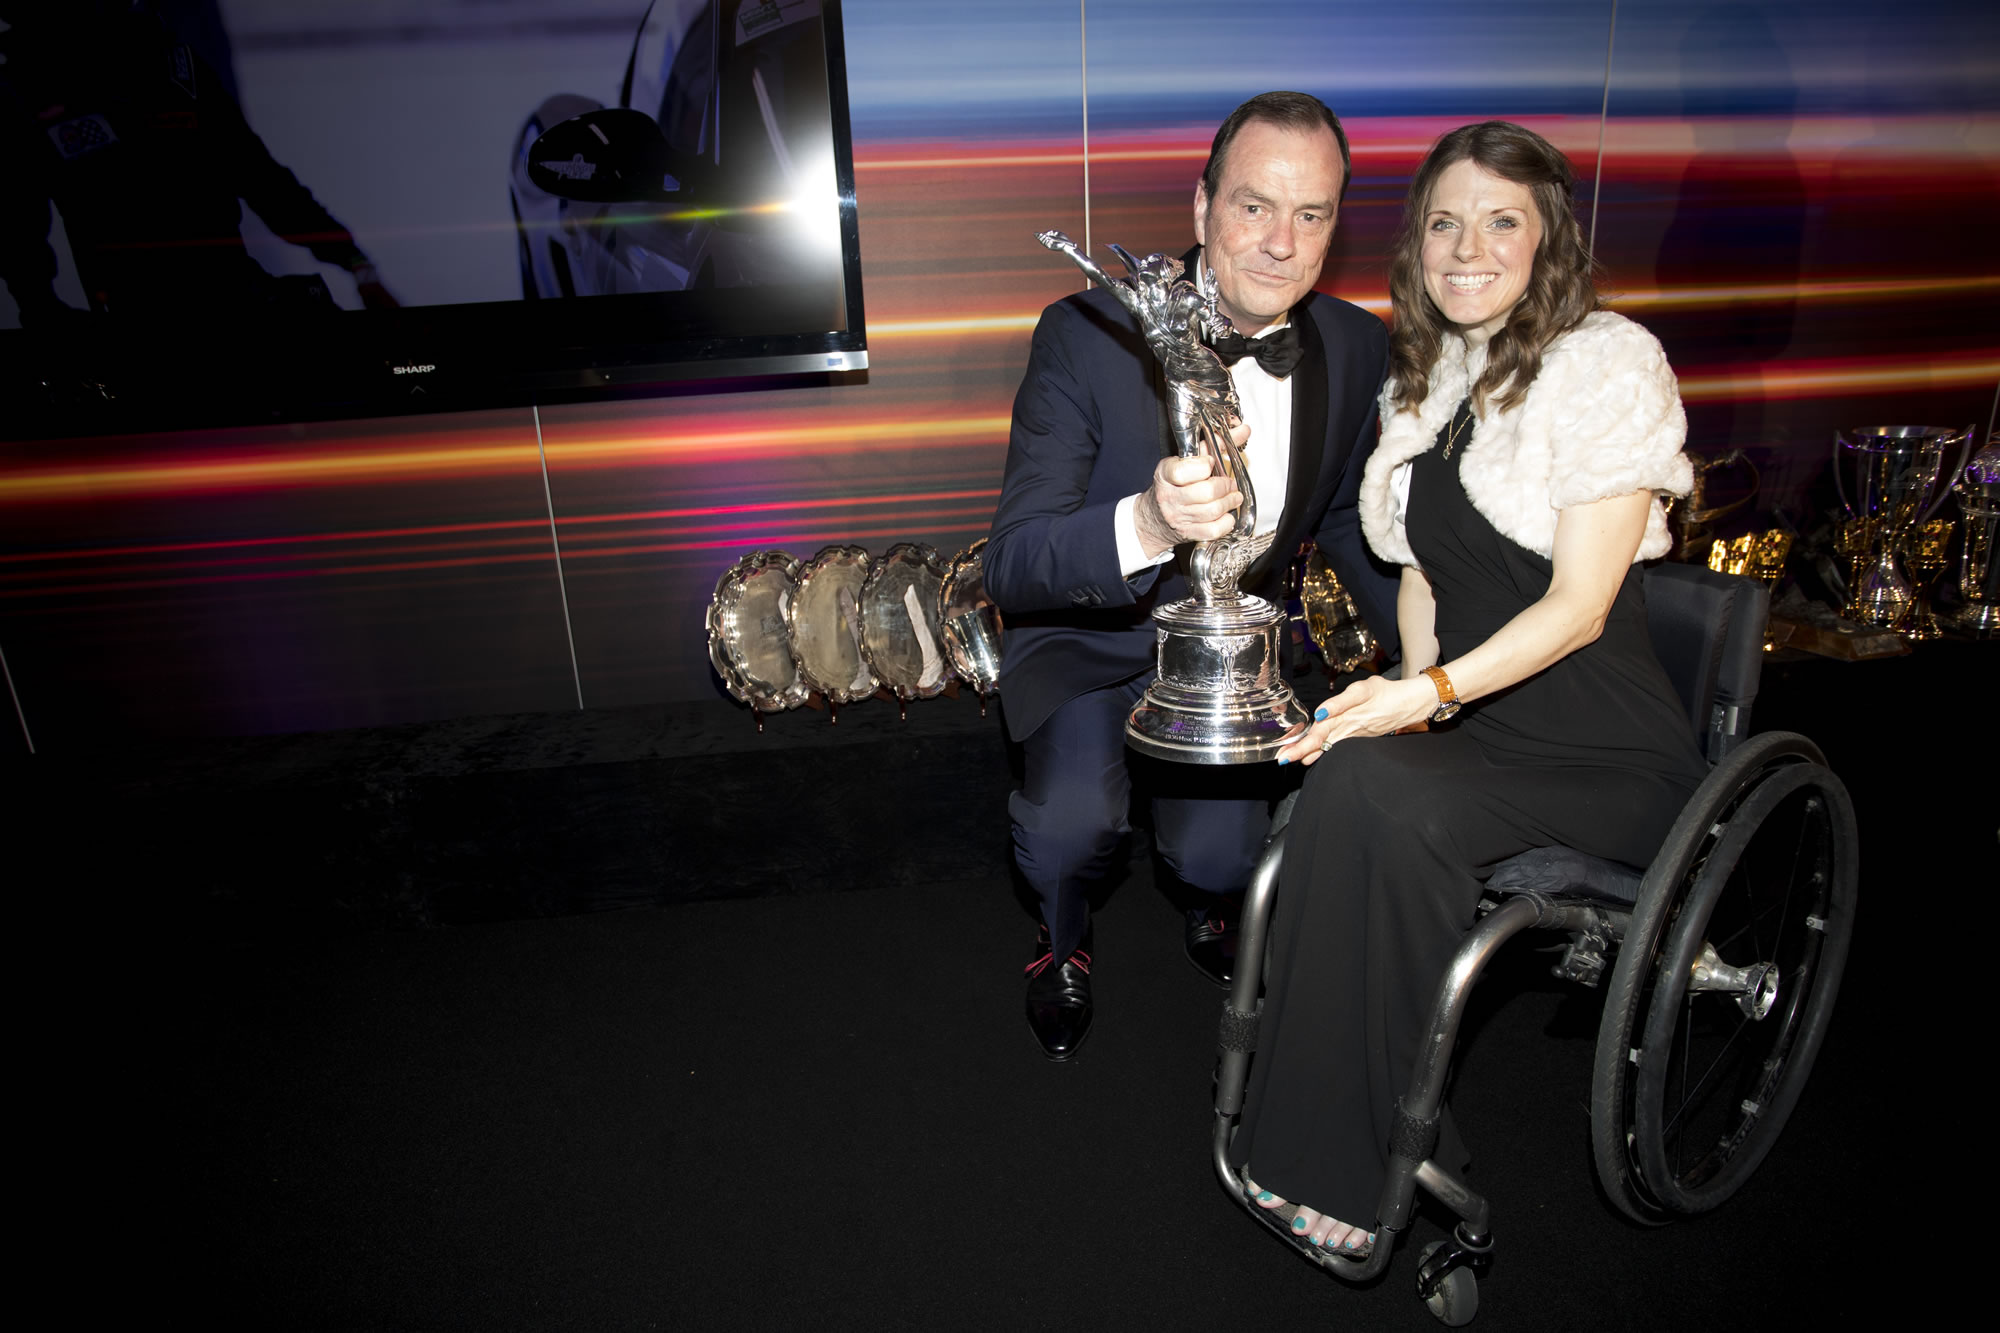 Nathalie_McGloin_Ambassador_Night_of_Champions_Alan_Gow_photo.jpg